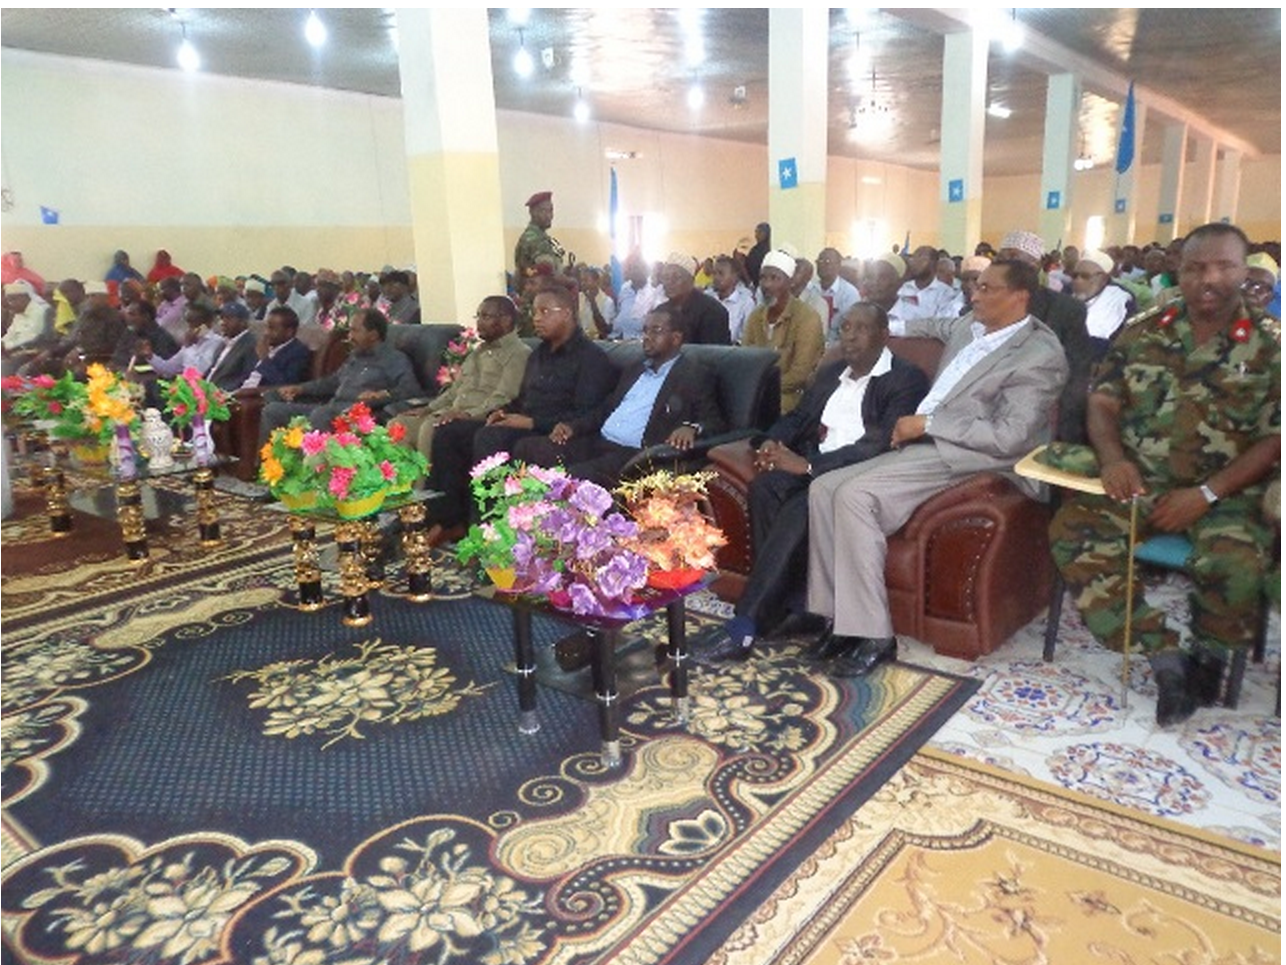 Clan Federalism Continues to Thwart Reconciliation and Democratic Governance in Somalia